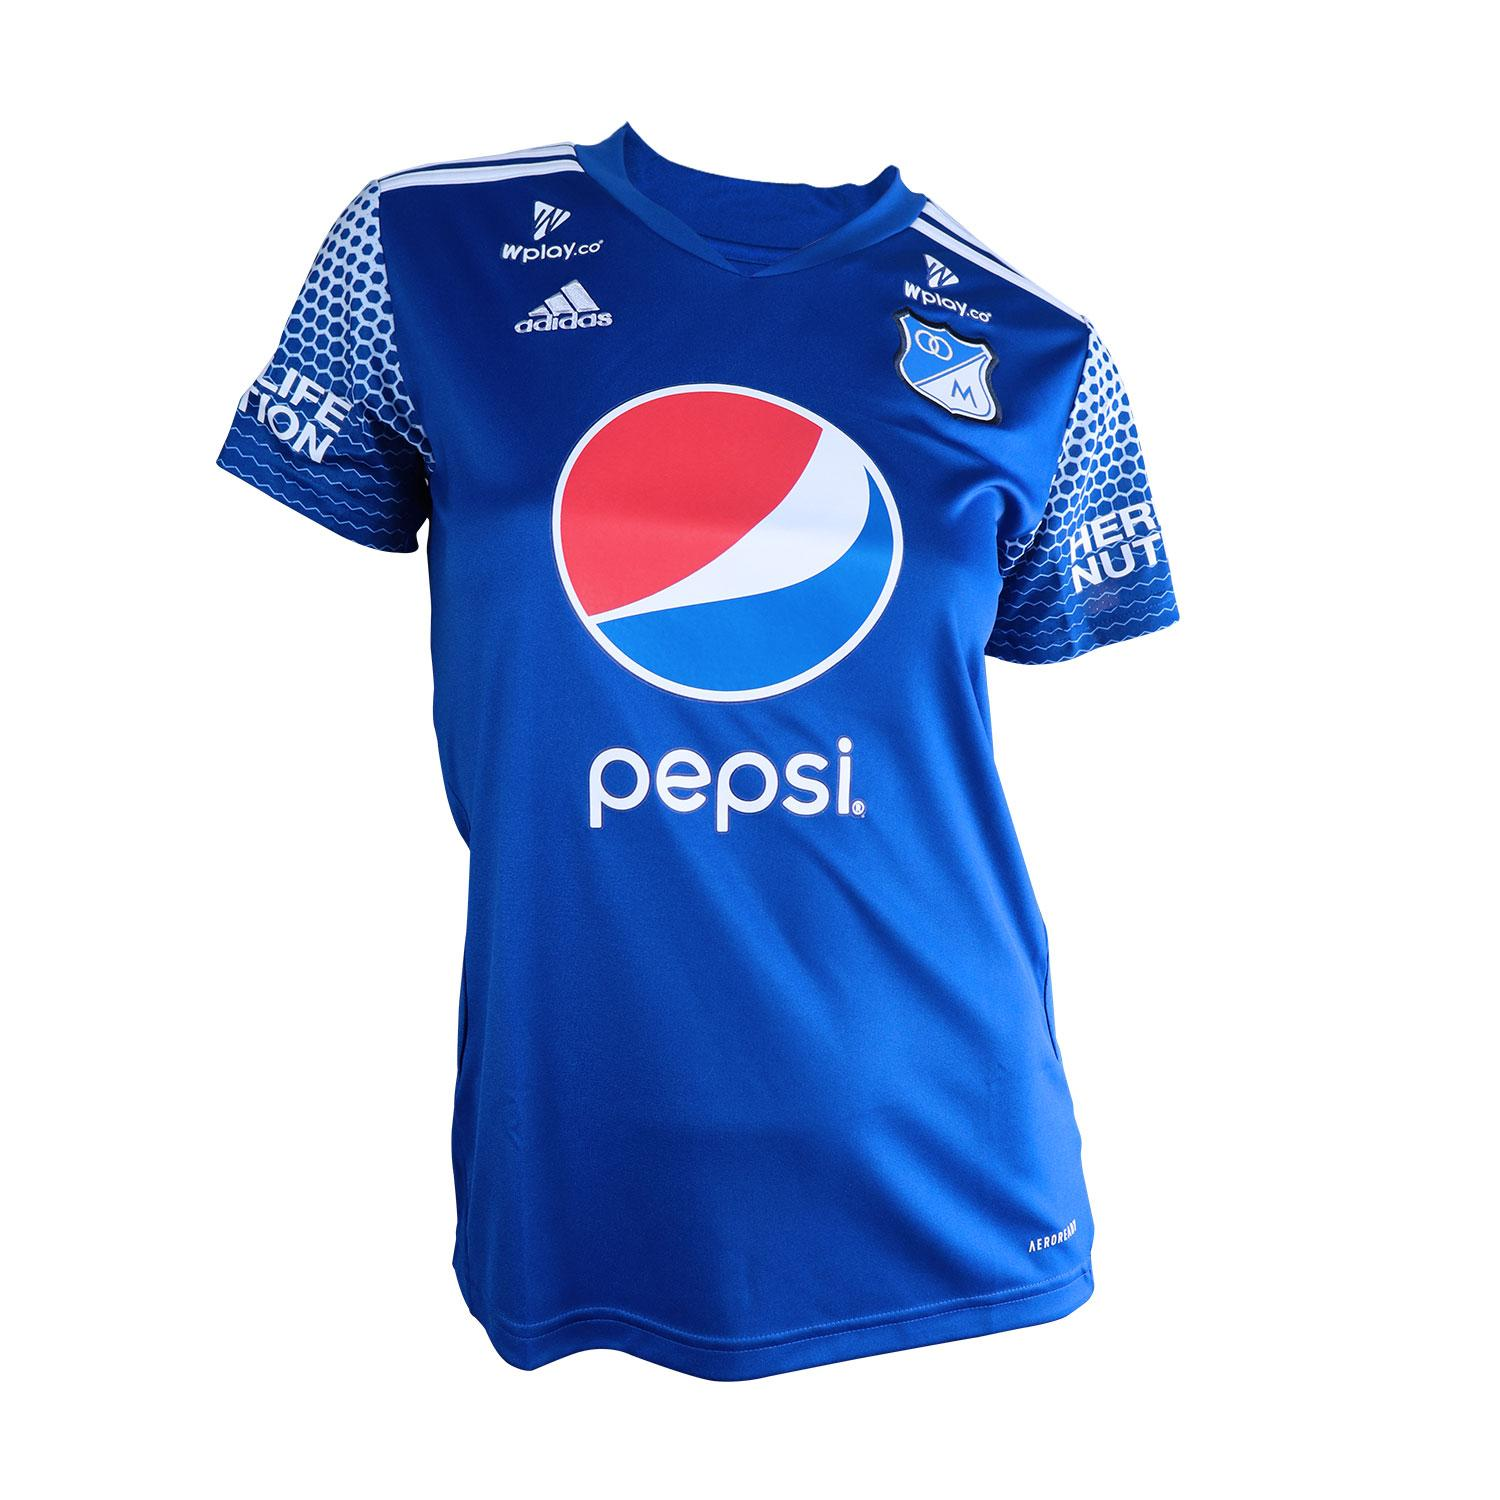 CAMISETA-OFICIAL-MUJER-MILLOS-2020